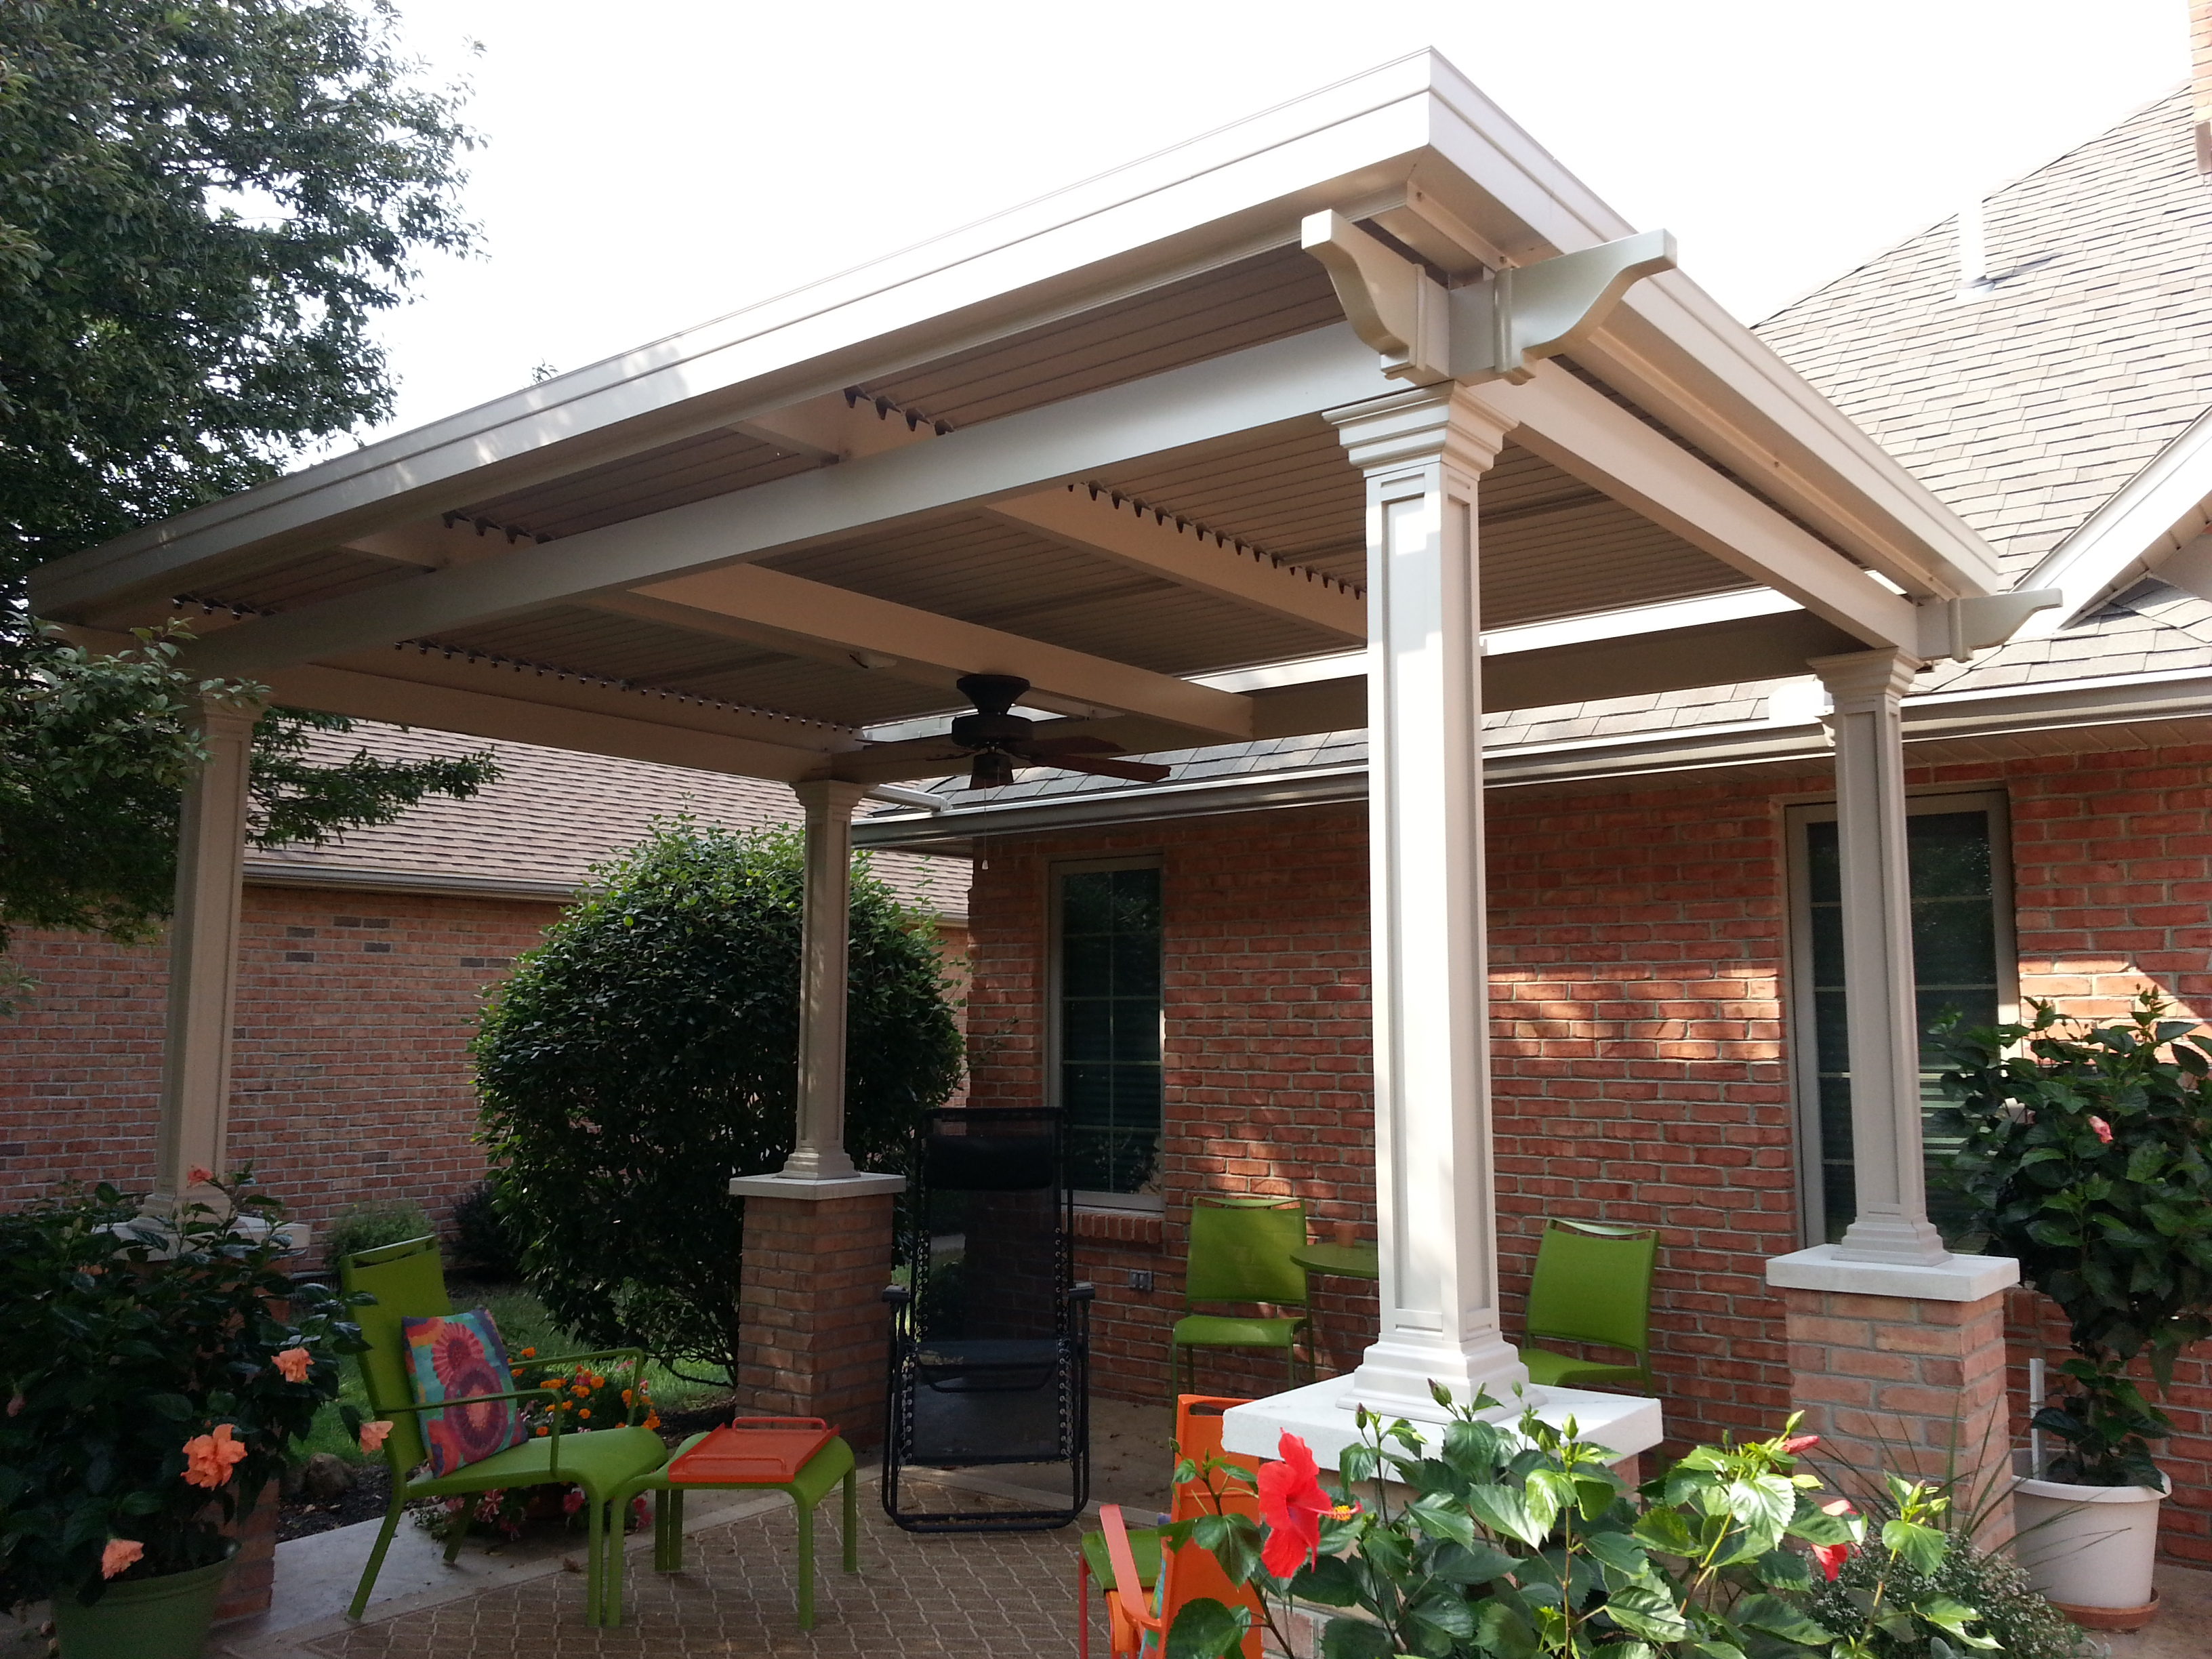 Add a freestanding louvered patio cover over your deck or ... on Patio Cover Ideas For Rain id=65419